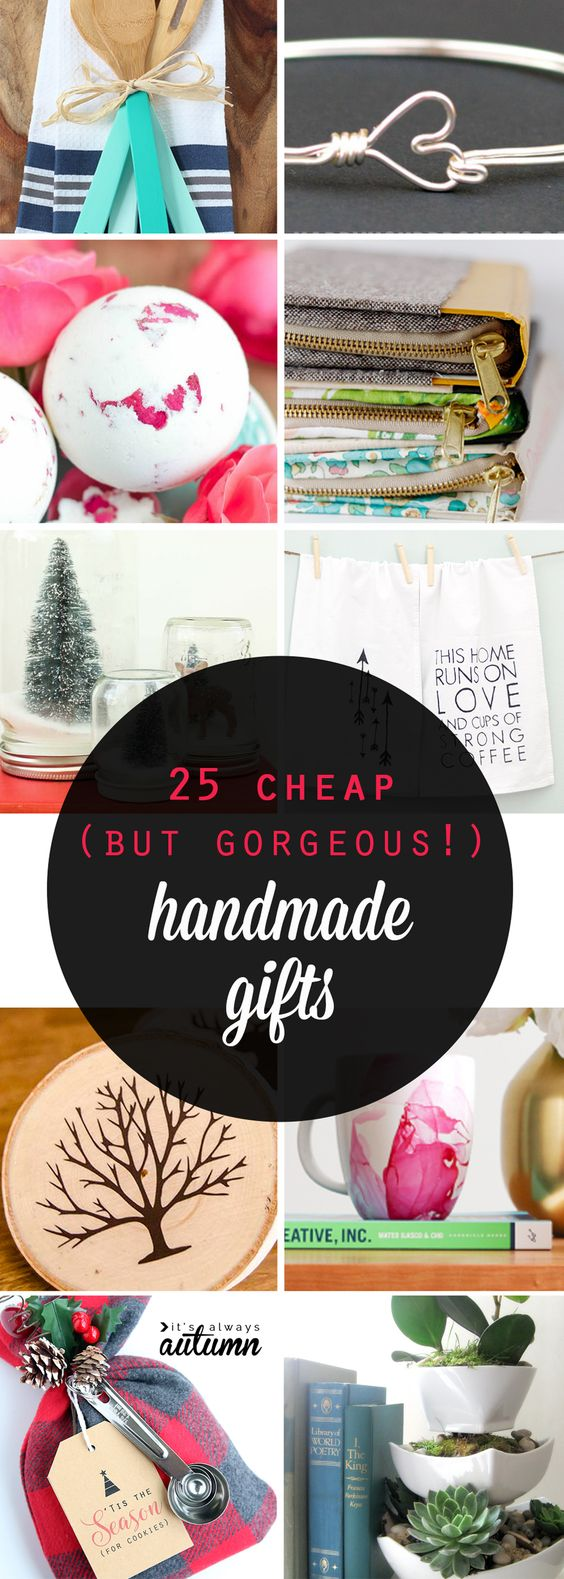 25 Cheap But Gorgeous Diy Gift Ideas Faux Granite